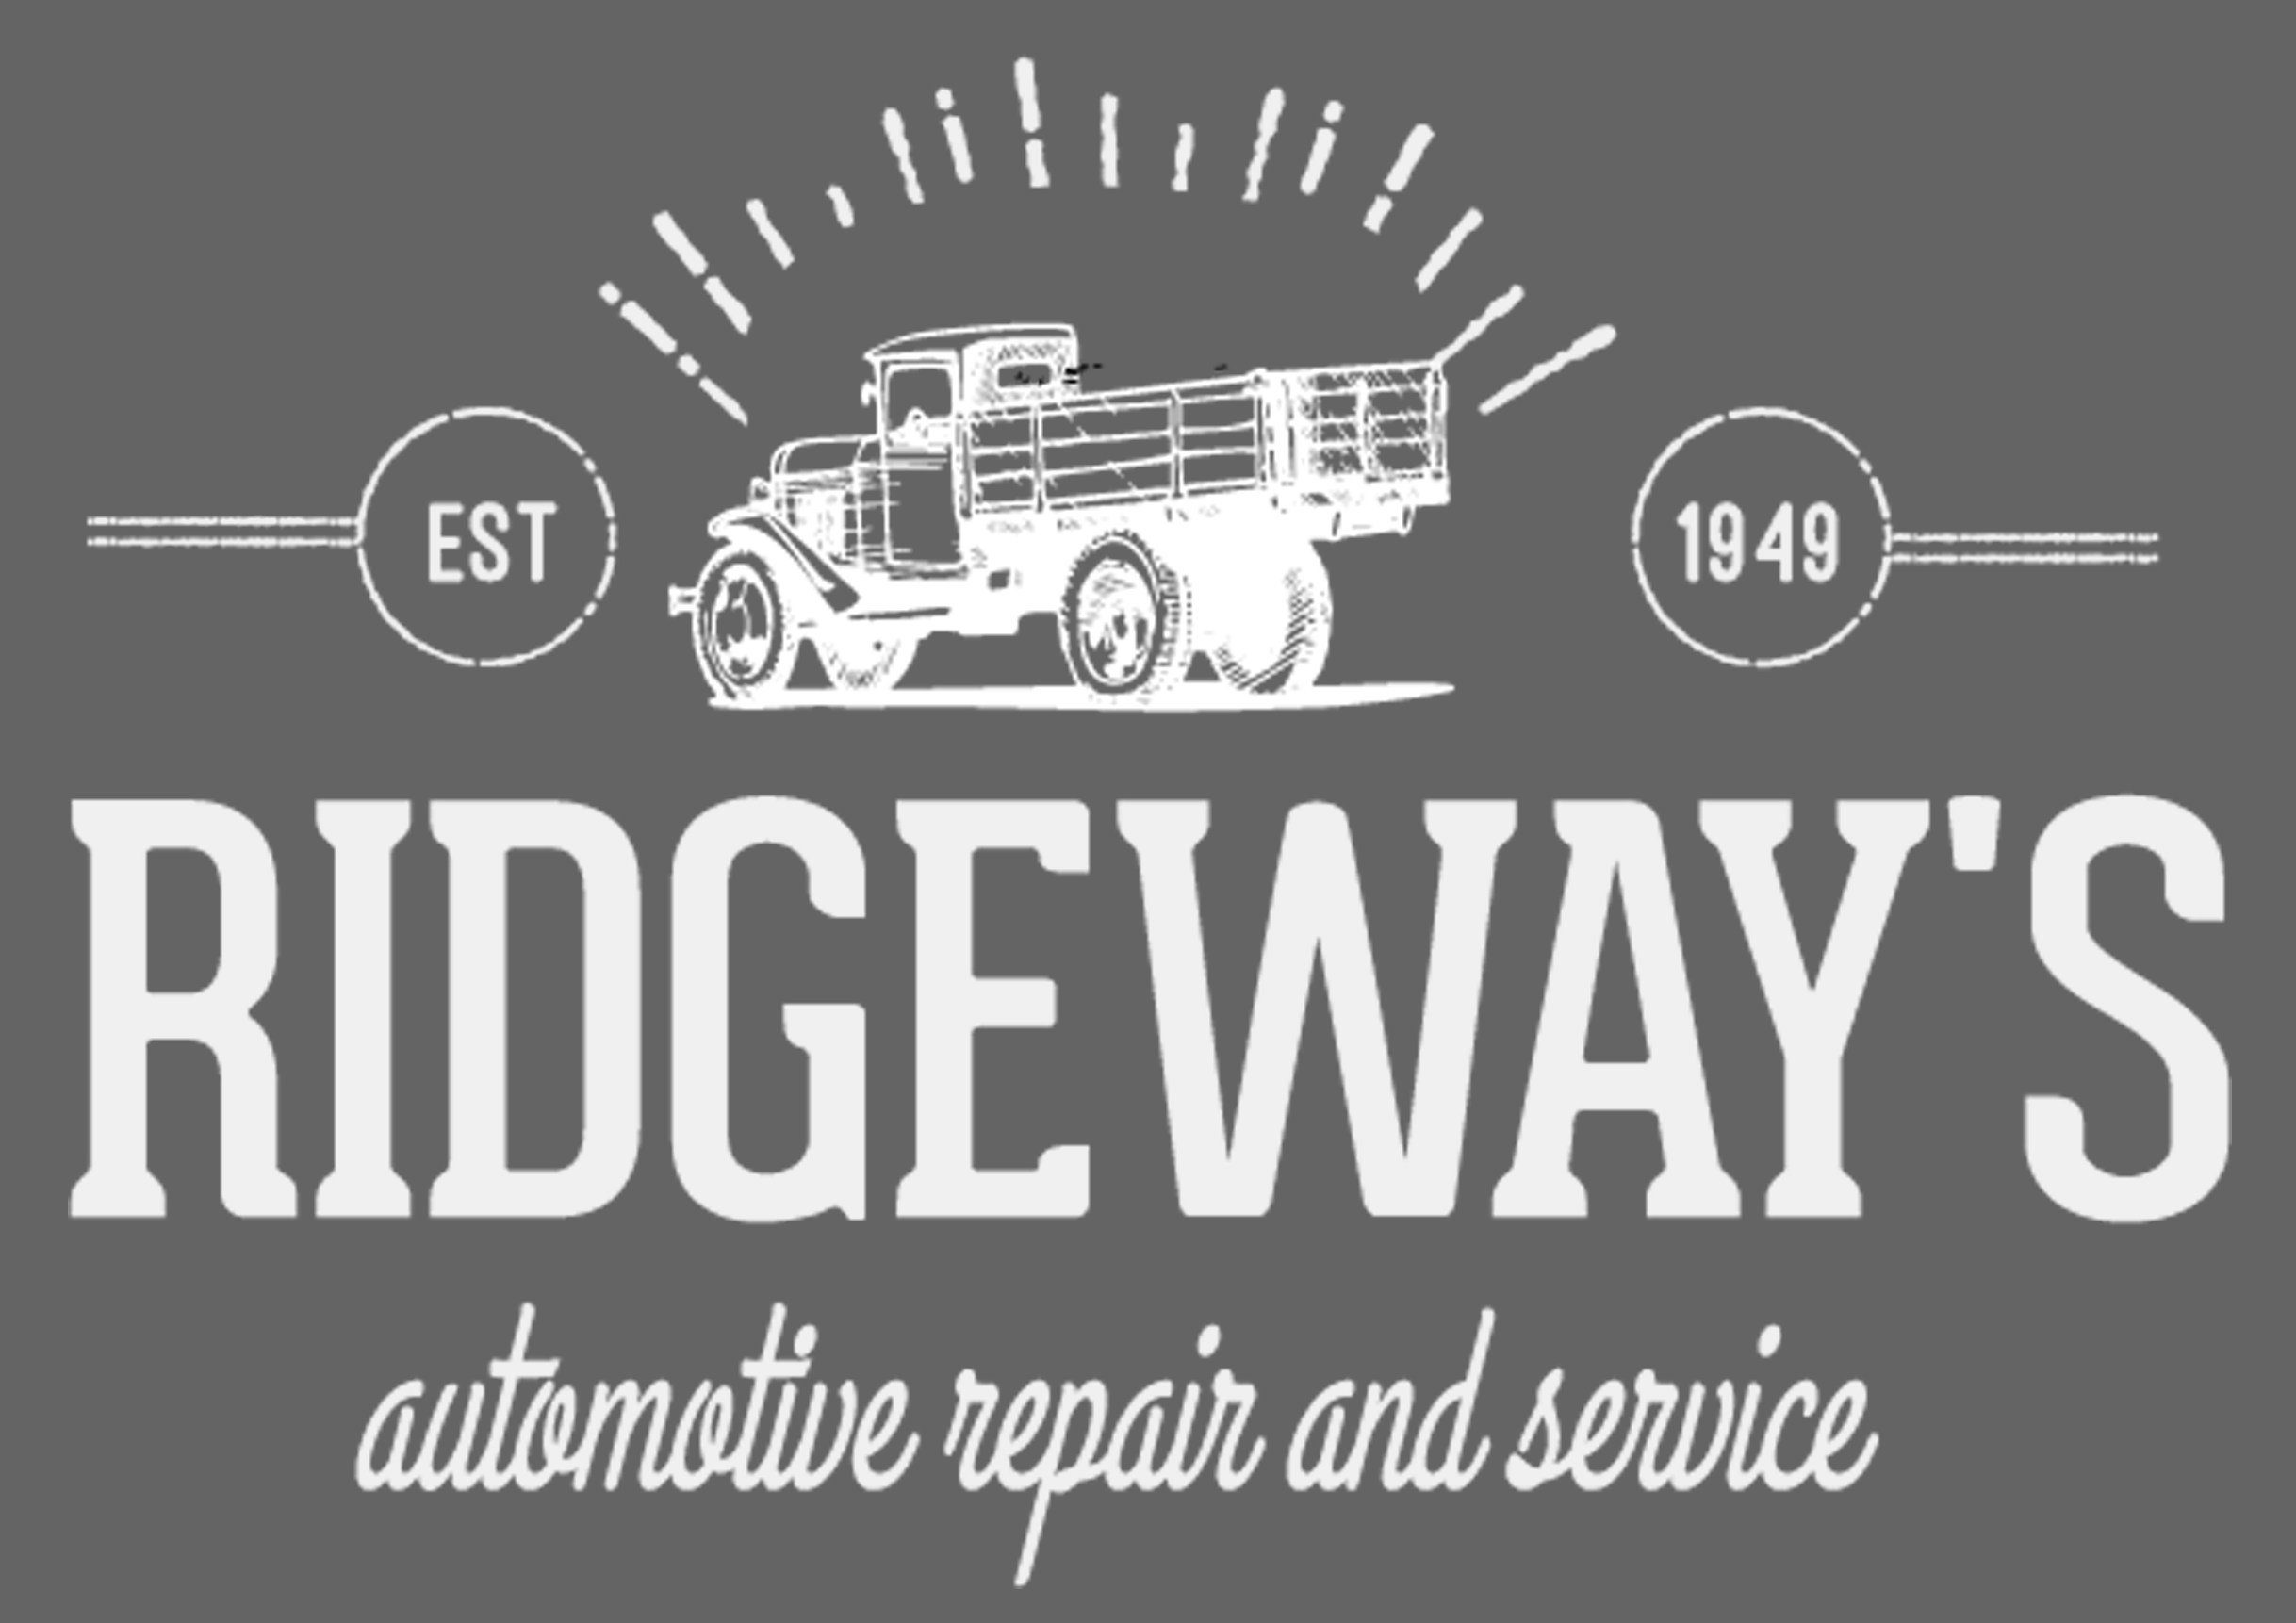 Ridegways Used Cars & Auto Repair